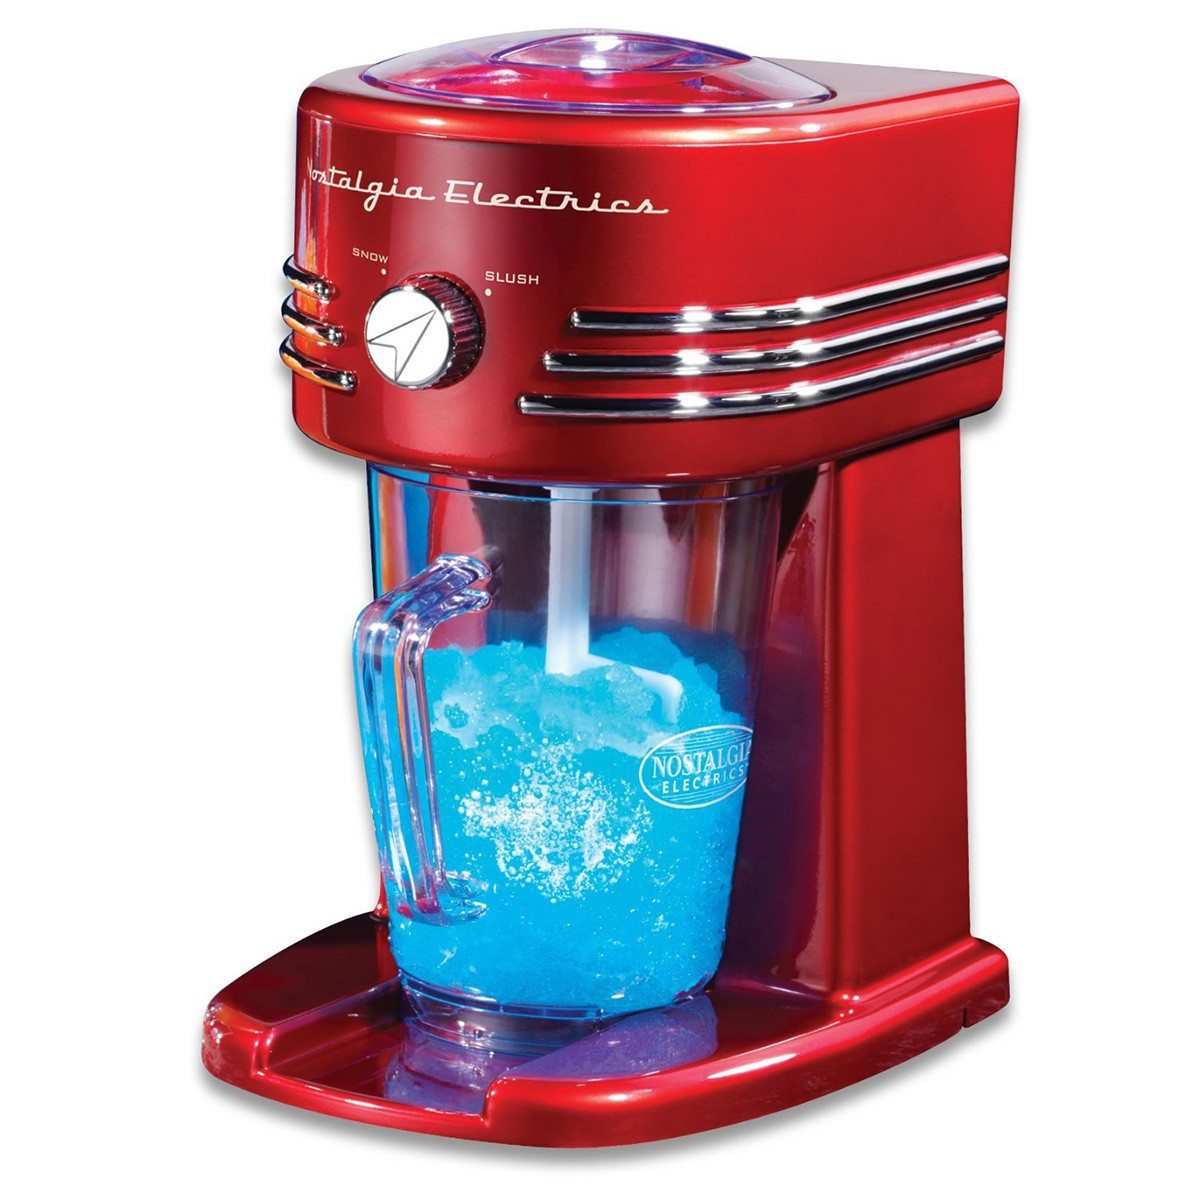 Slush- & Crushed-Ice-Maker